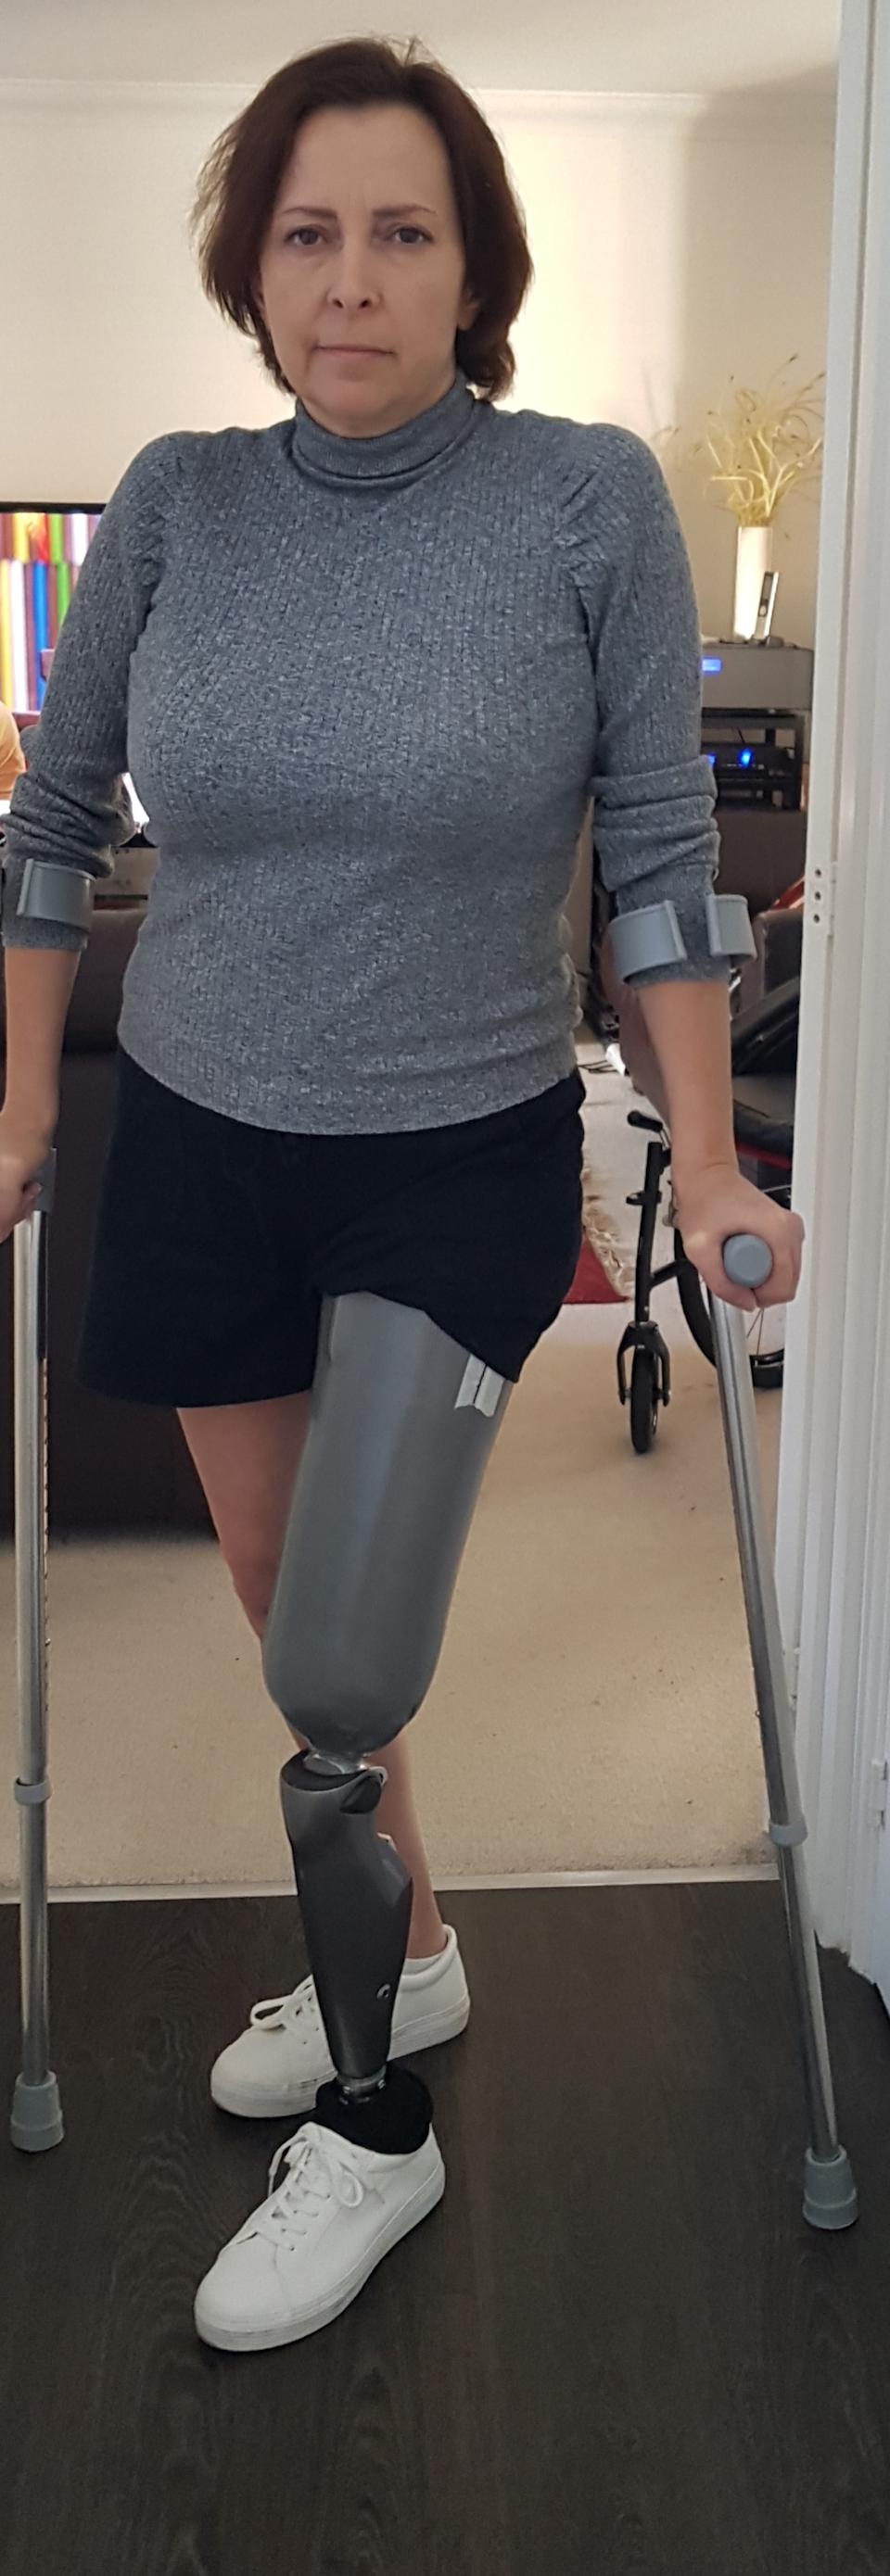 Helen Way, 49, received her prosthetic leg in Oct 2020. (Caters)